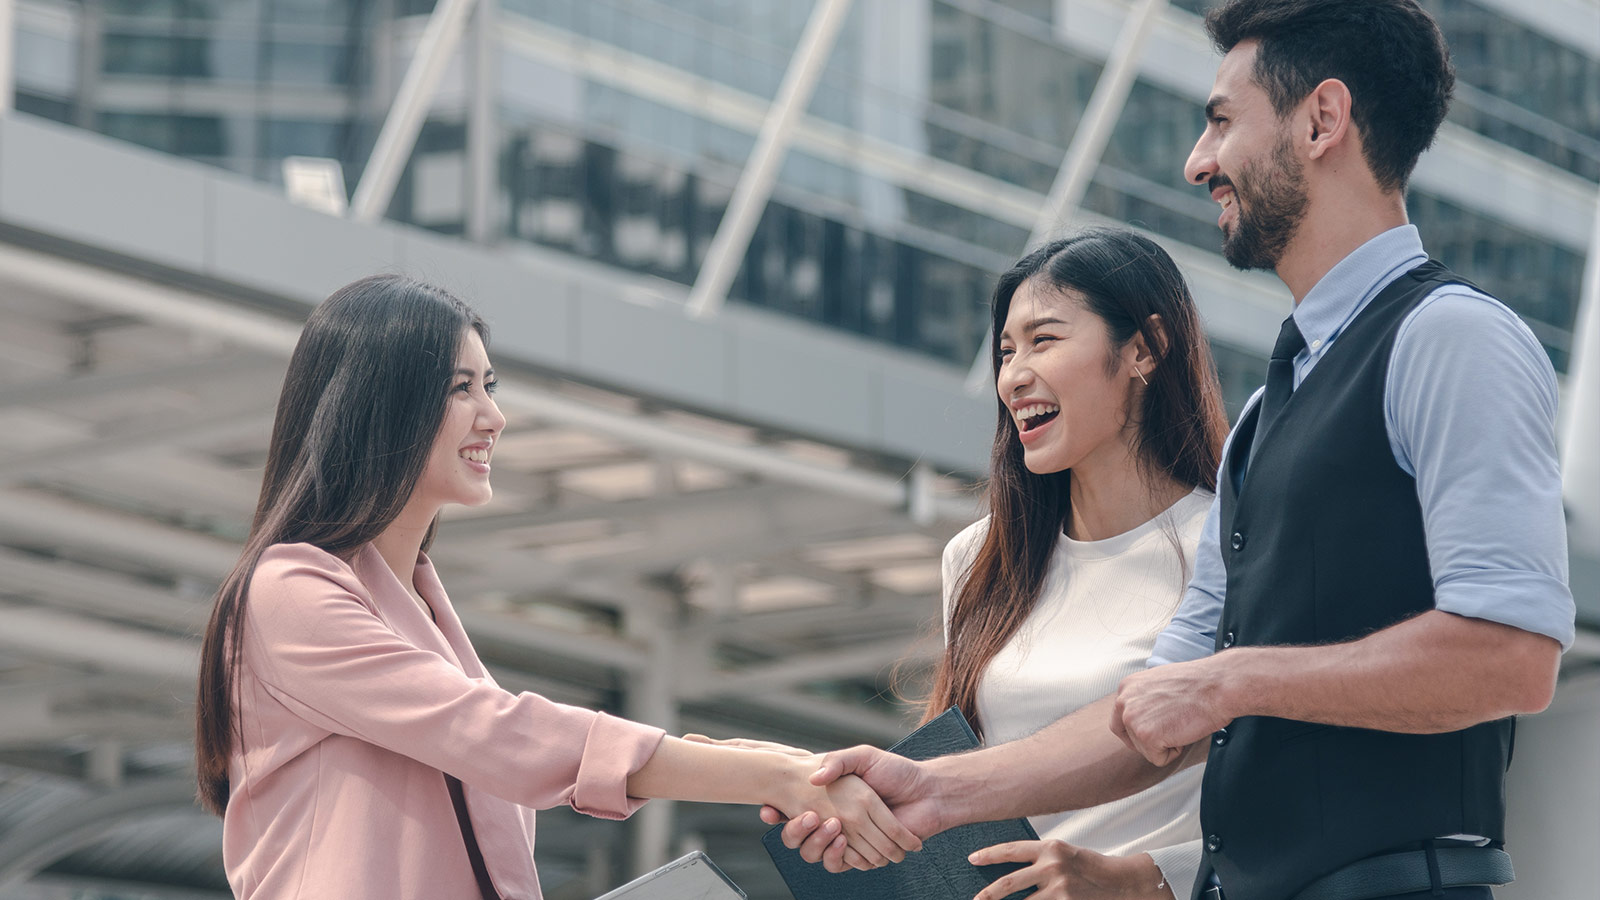 Three people while shaking hands